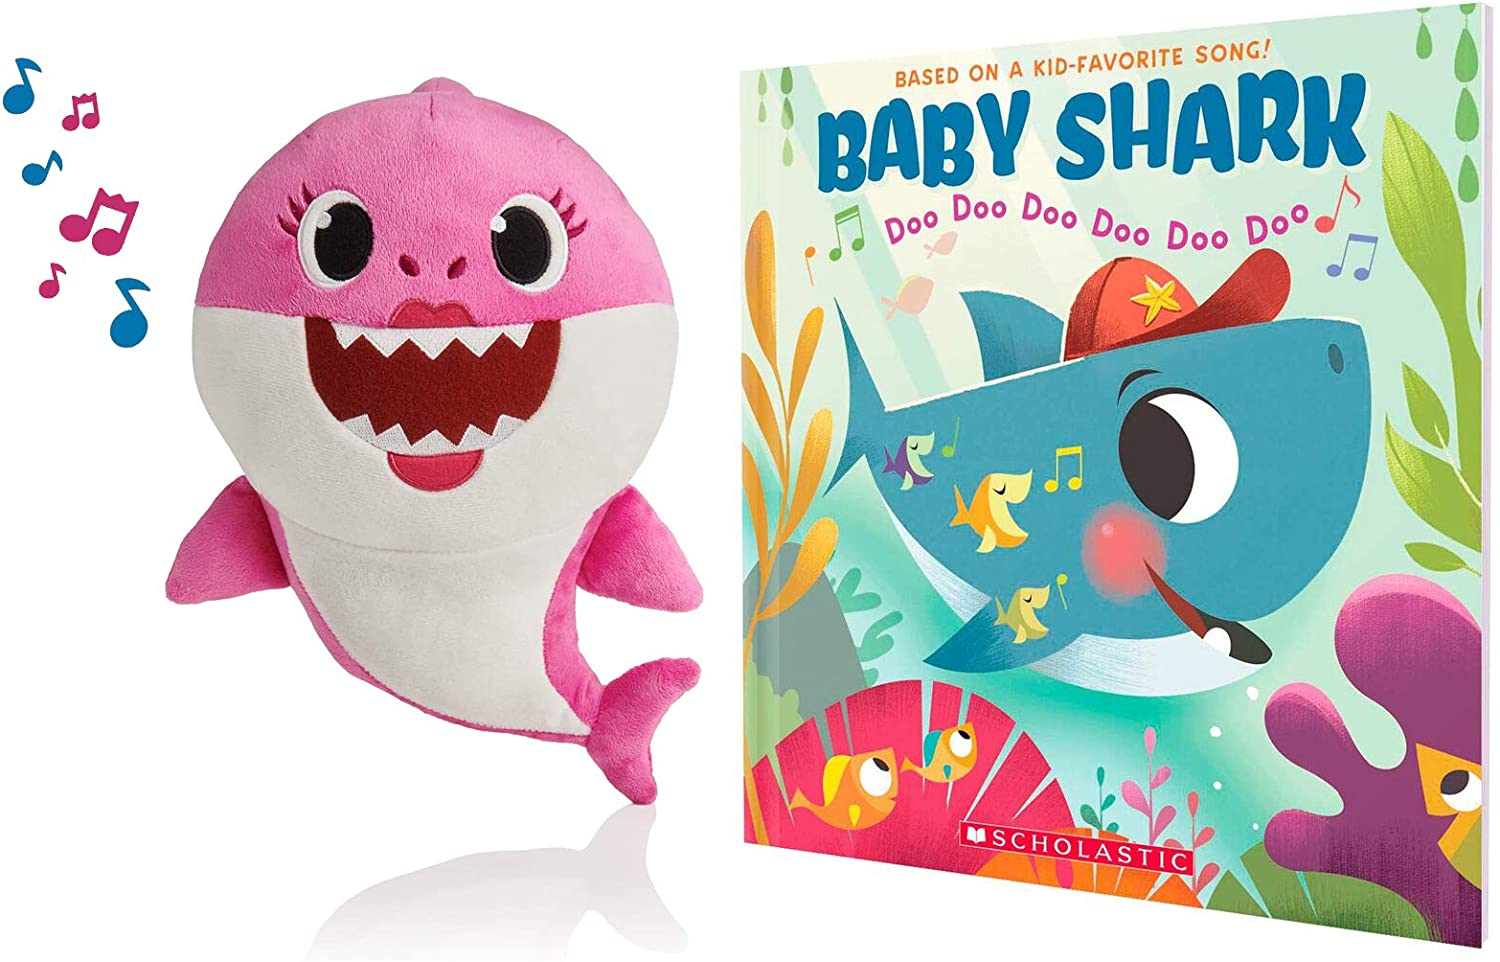 Set! Baby Shark Official Song Doll and Baby Shark: Doo Doo Doo Doo Doo Doo Yellow A Baby Shark Book